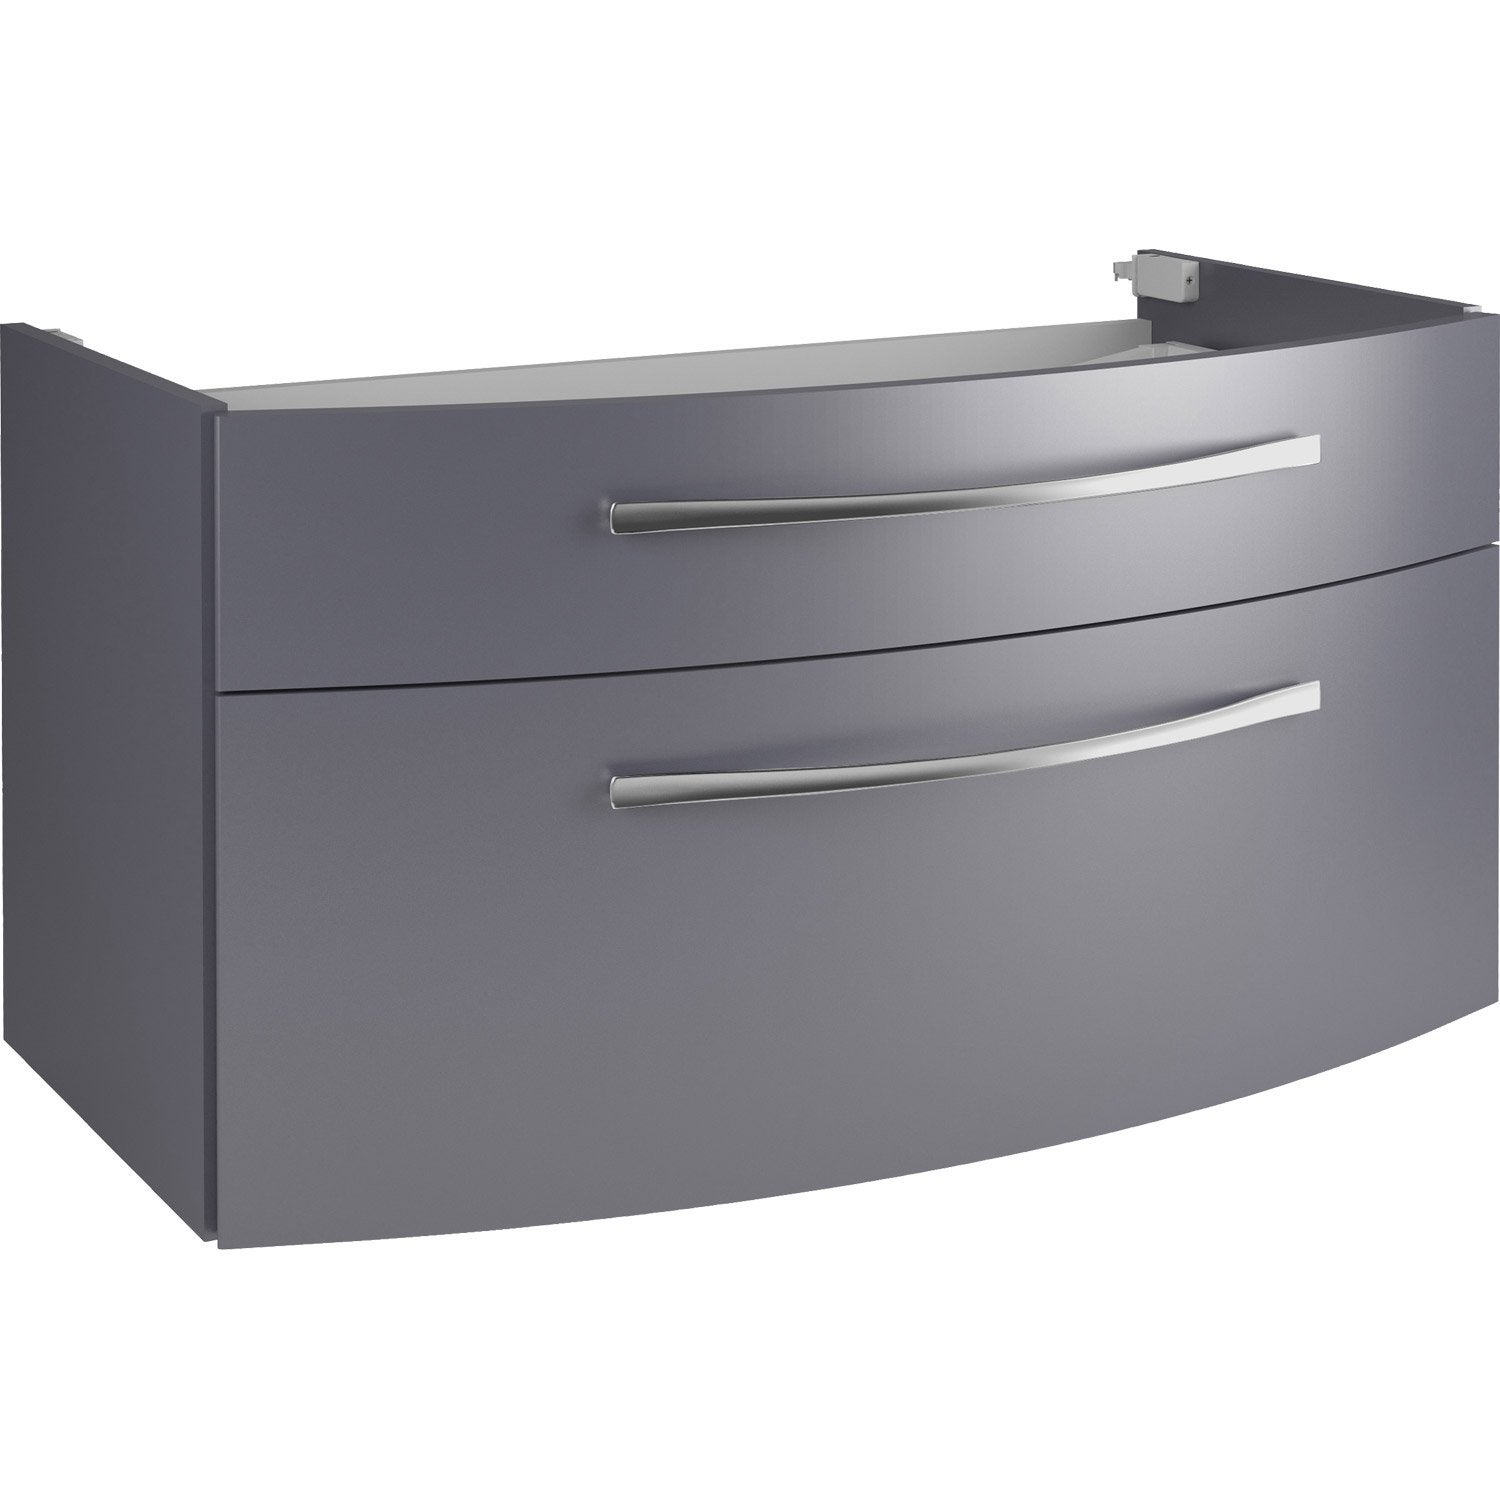 Meuble sous vasque gris maison design for Sous lavabo leroy merlin